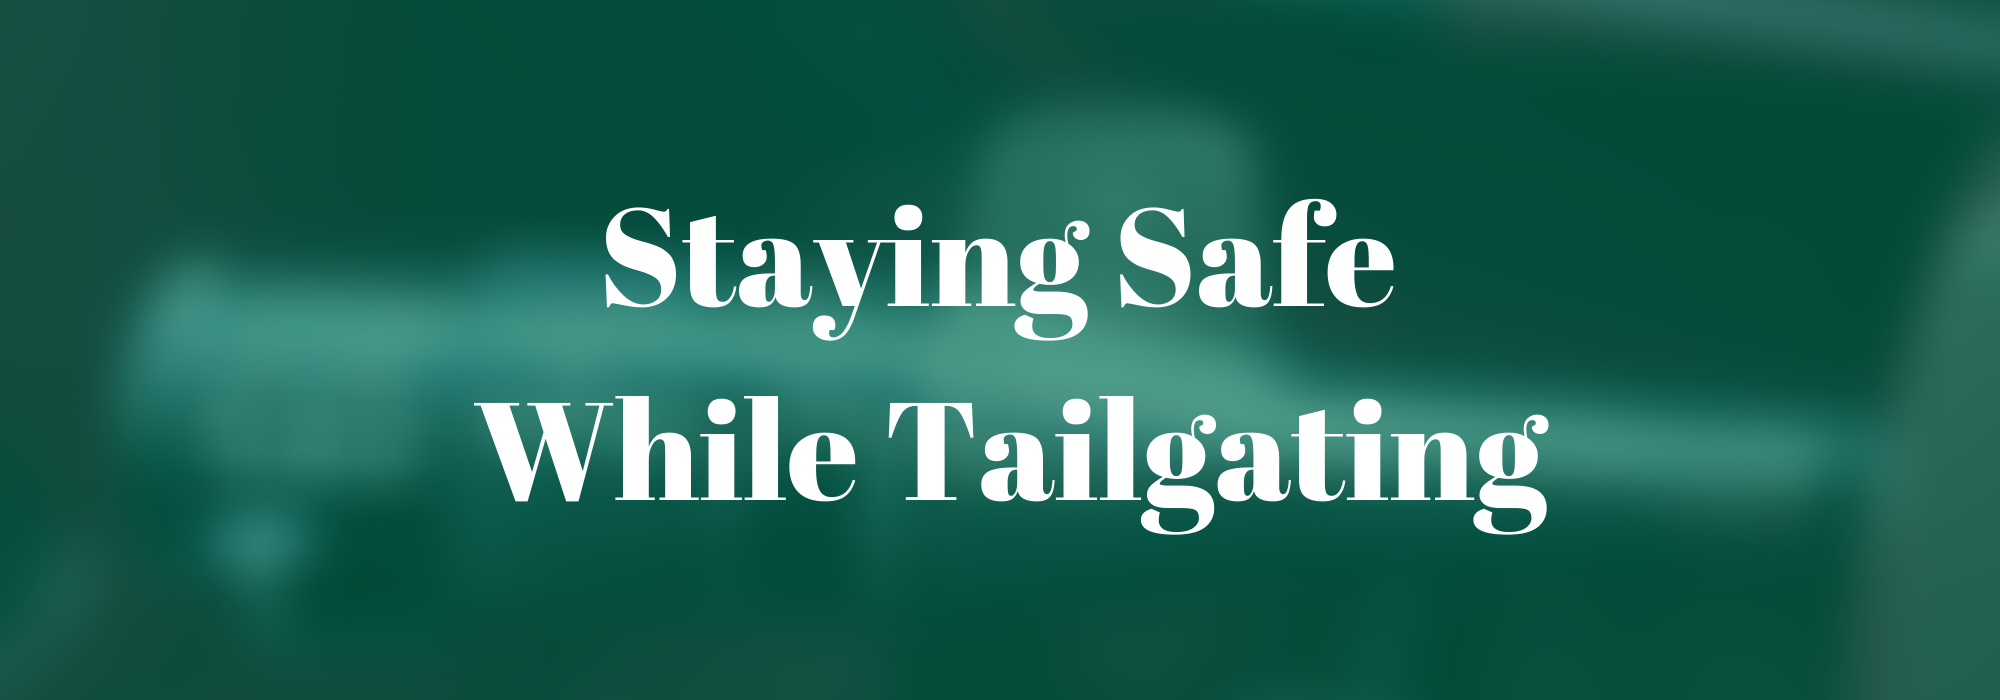 Staying Safe While Tailgating